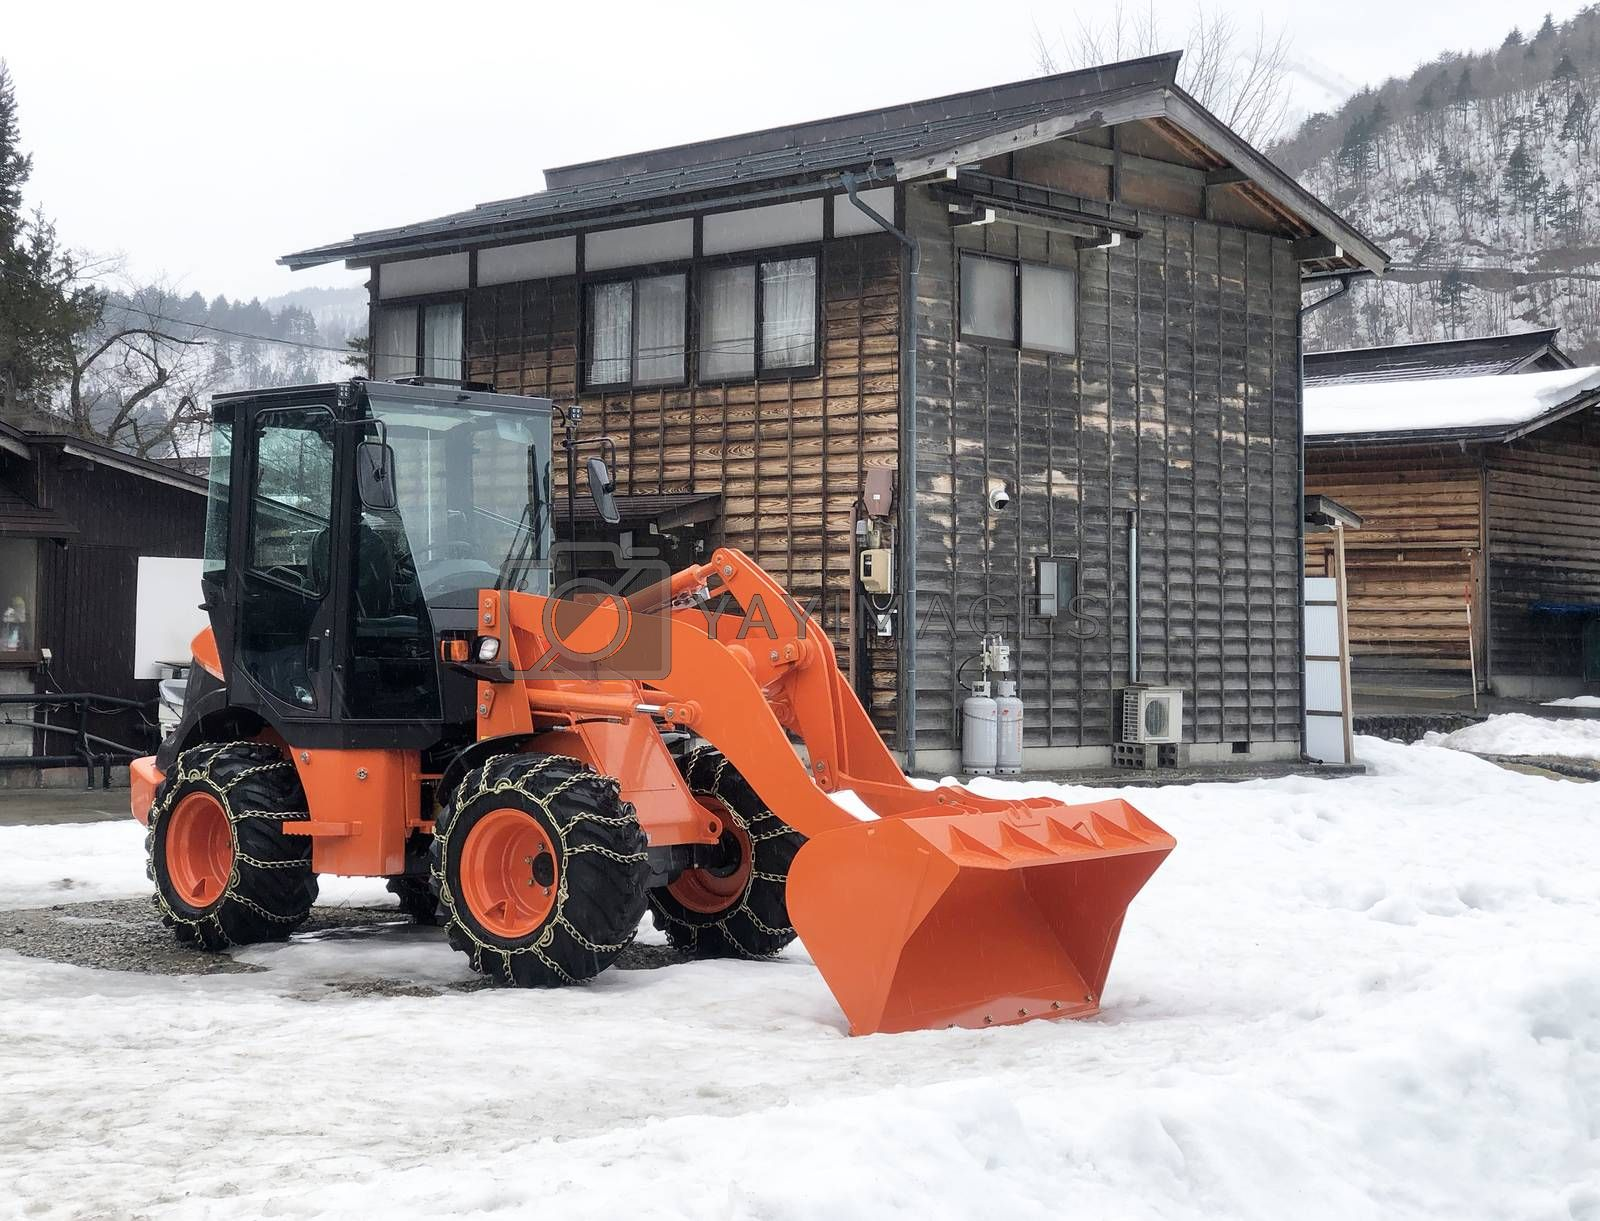 Orange Snowplow Truck Remove the Snow in Shirakawago, Japan